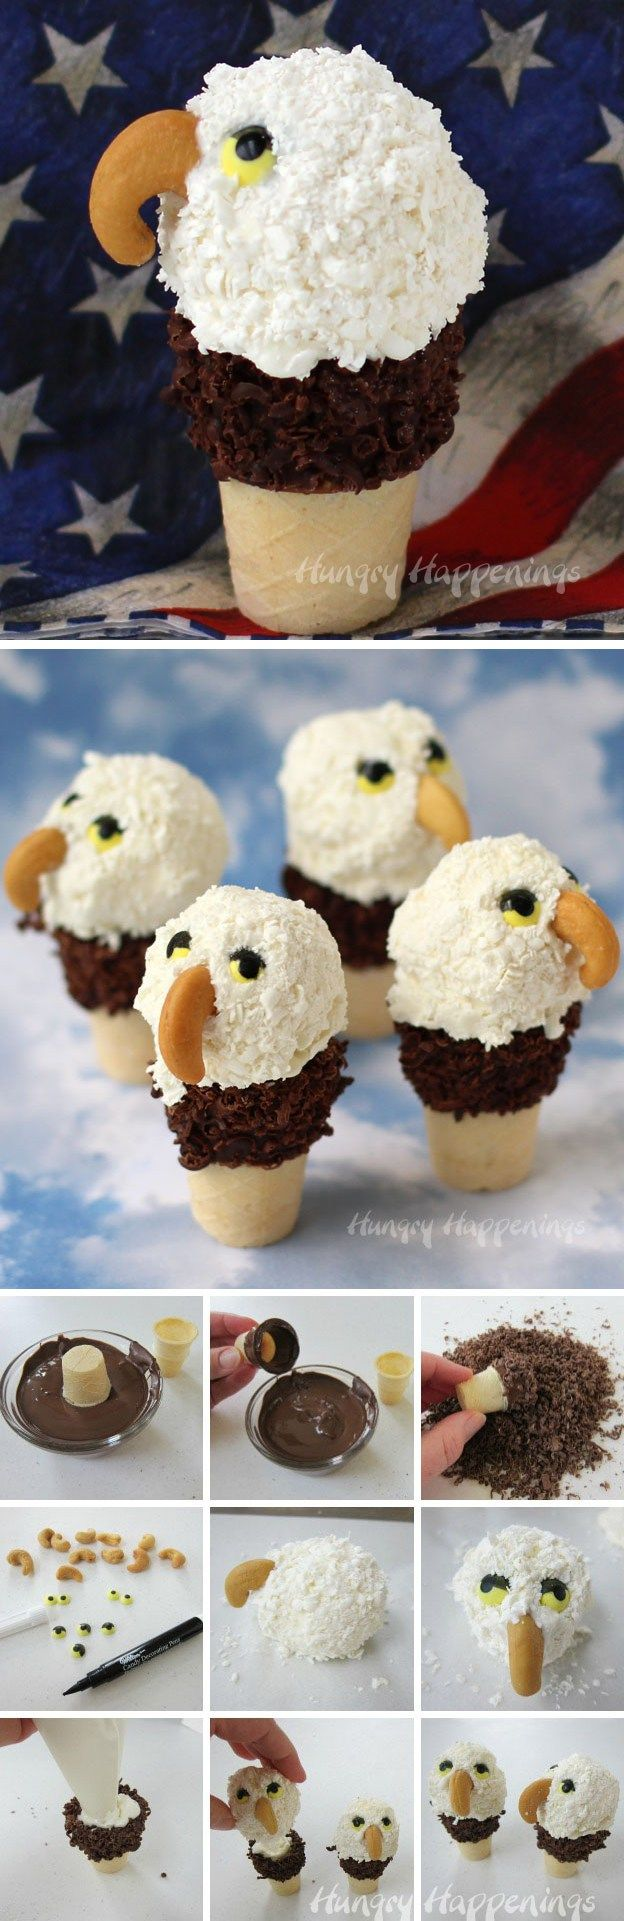 Create your own awe inspiring eagles for your July 4th celebrations. These Mini Ice Cream Cone Eagles coated in shredded Candy Melts are sure to be the hit of your patriotic party.